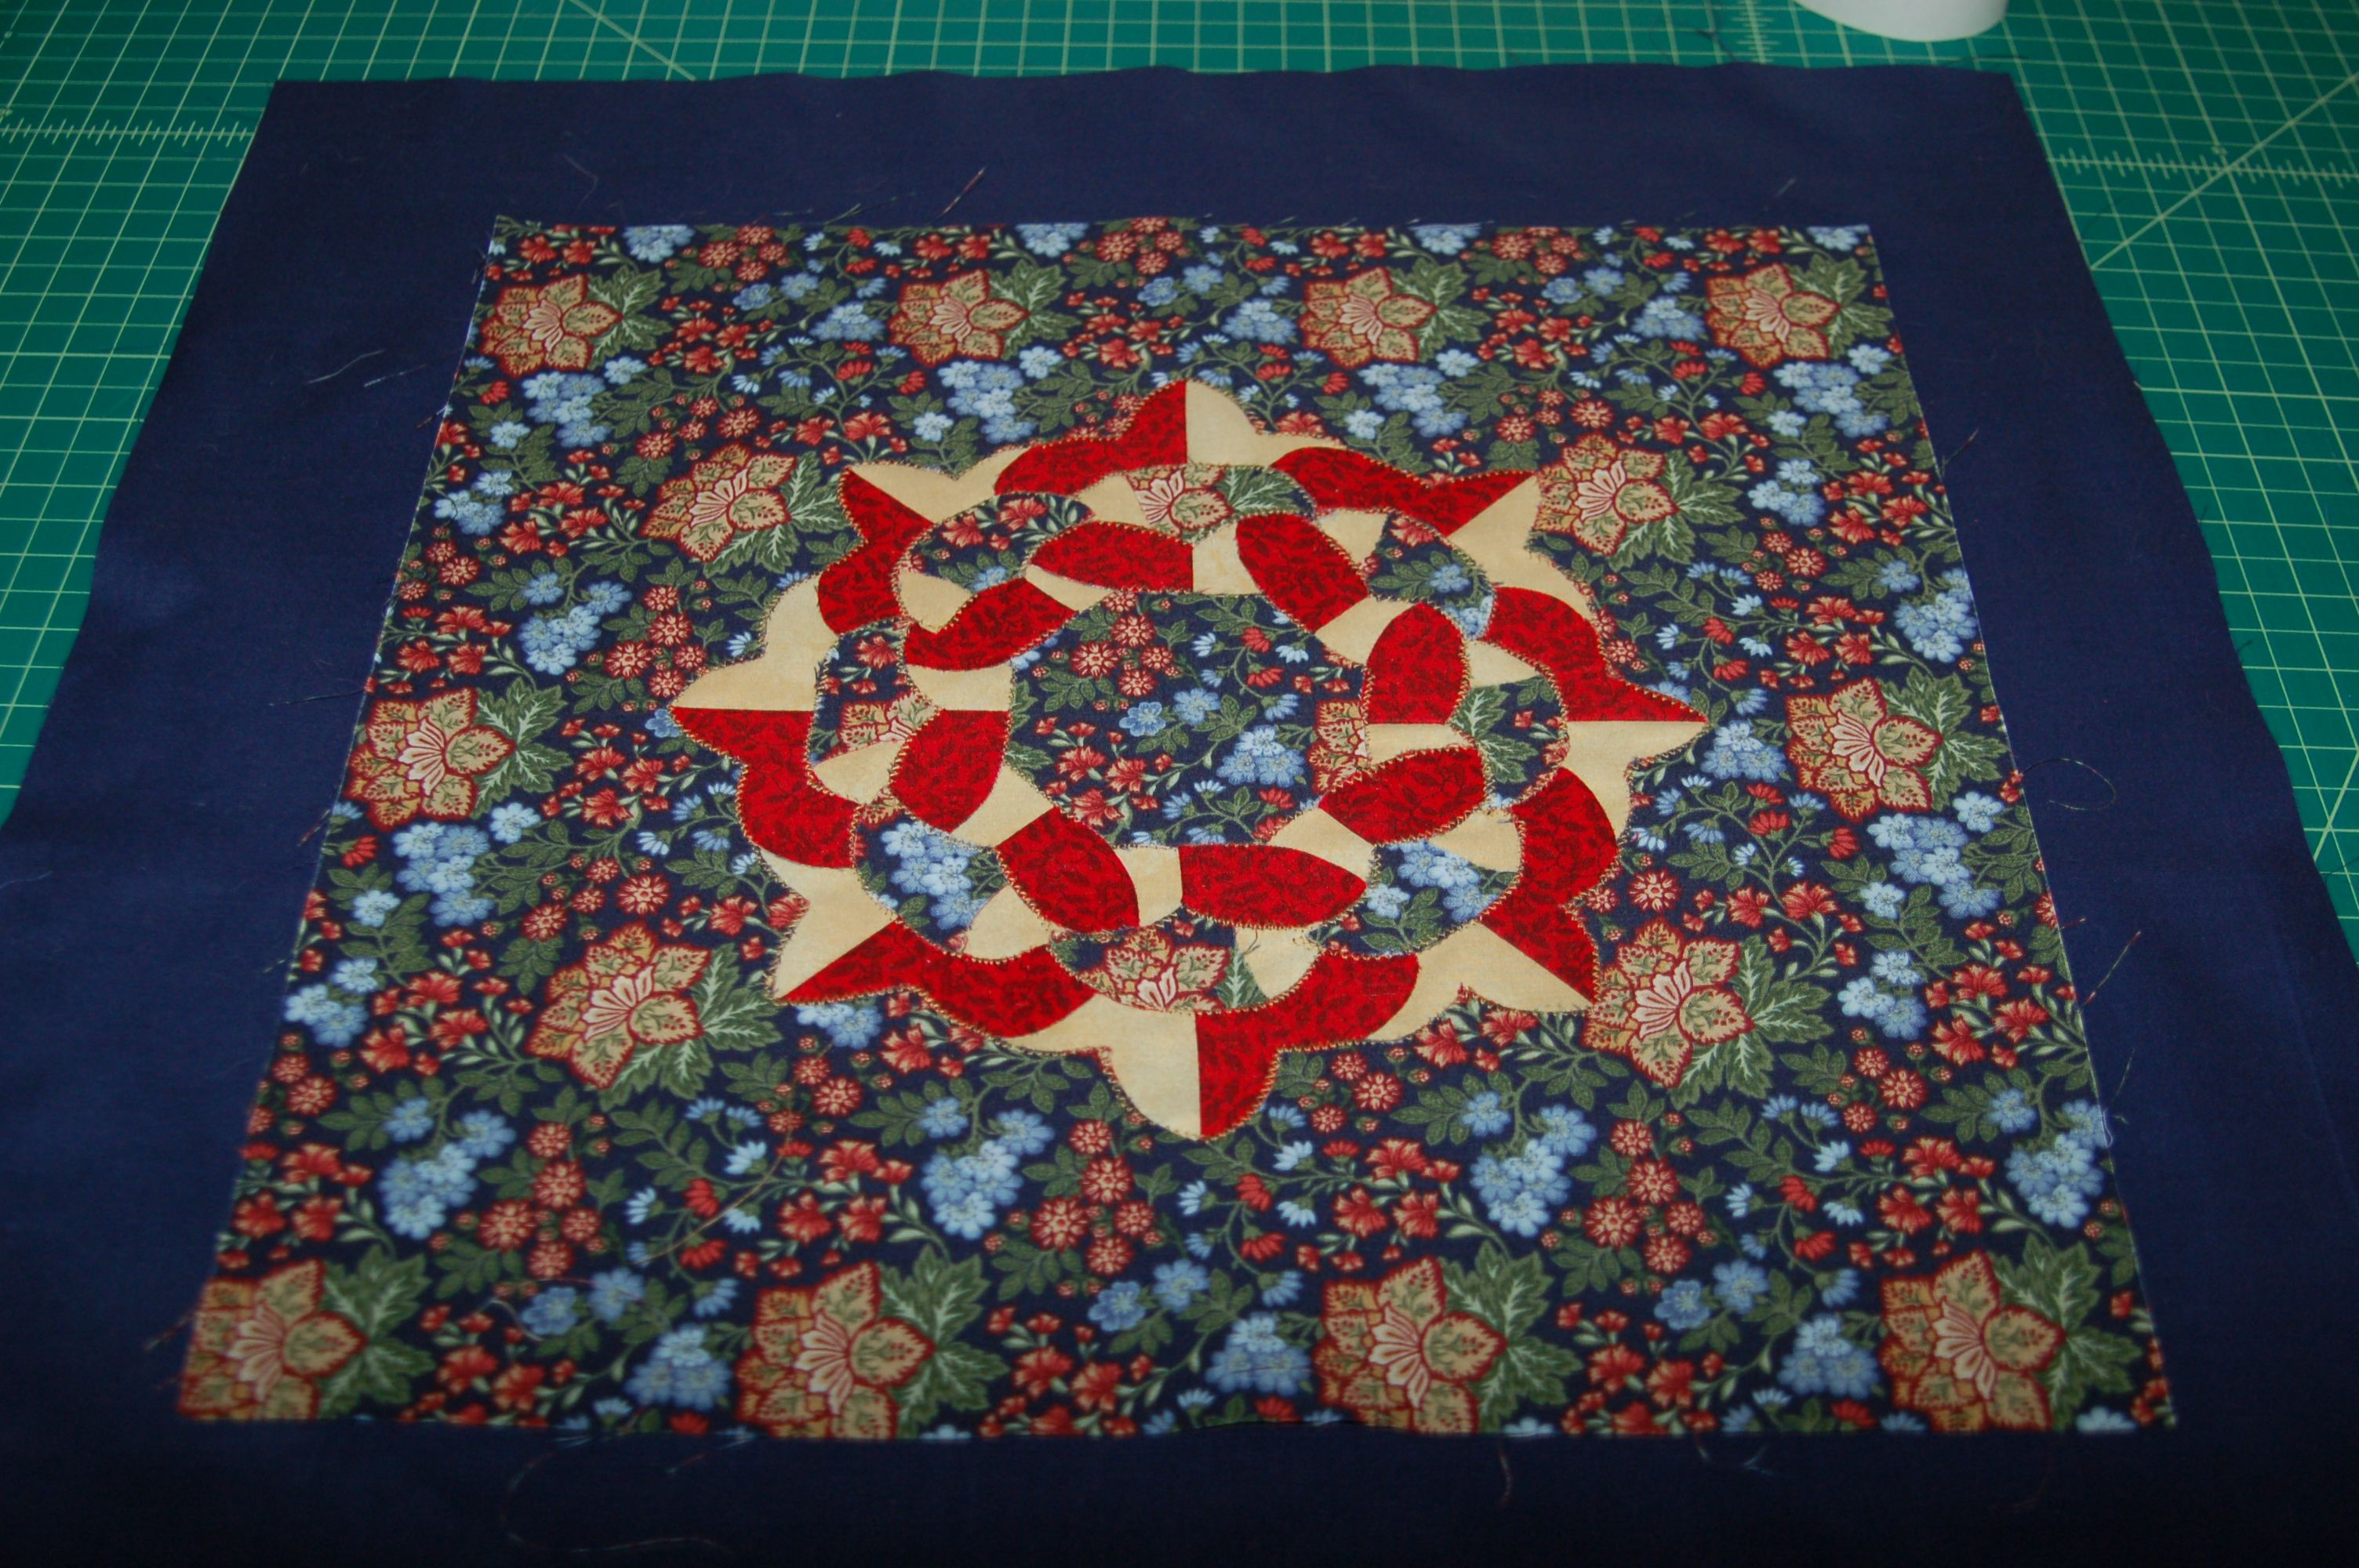 Cut and fold quilting.  I haven't decided whether to make a pillow or make 3 similar blocks for a wall hanging.